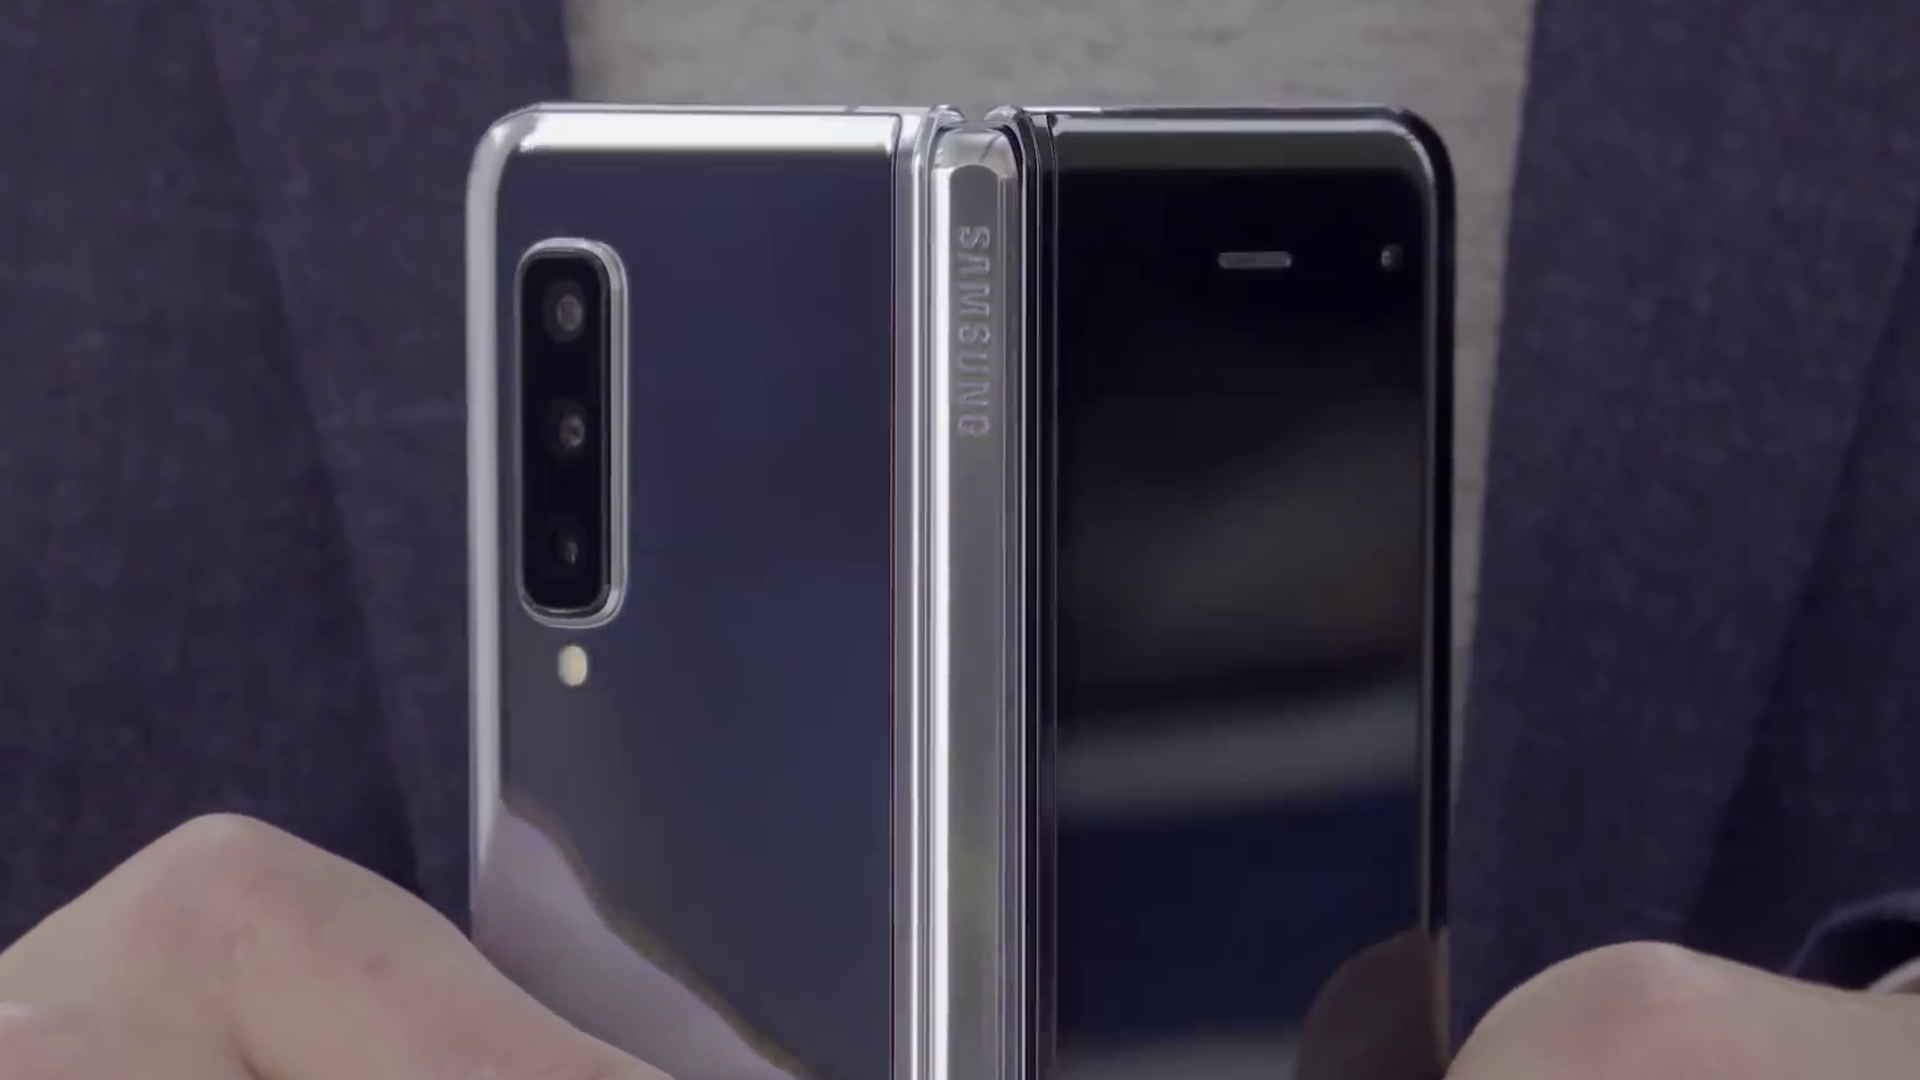 SAMSUNG RELEASES NEW VIDEO SHOWING OFF THE GALAXY FOLD